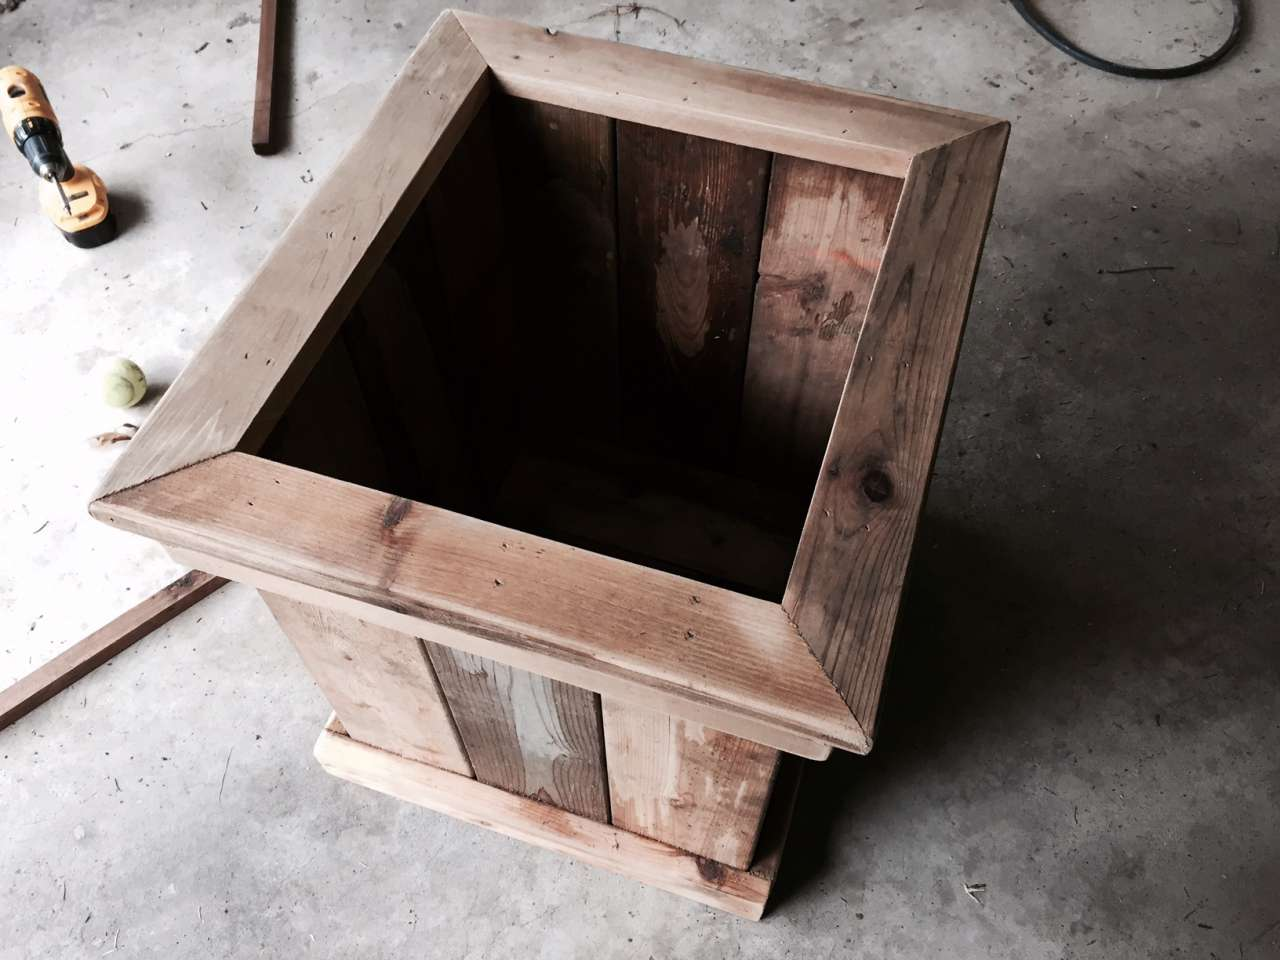 DIY: How to Make a Cedar Planter